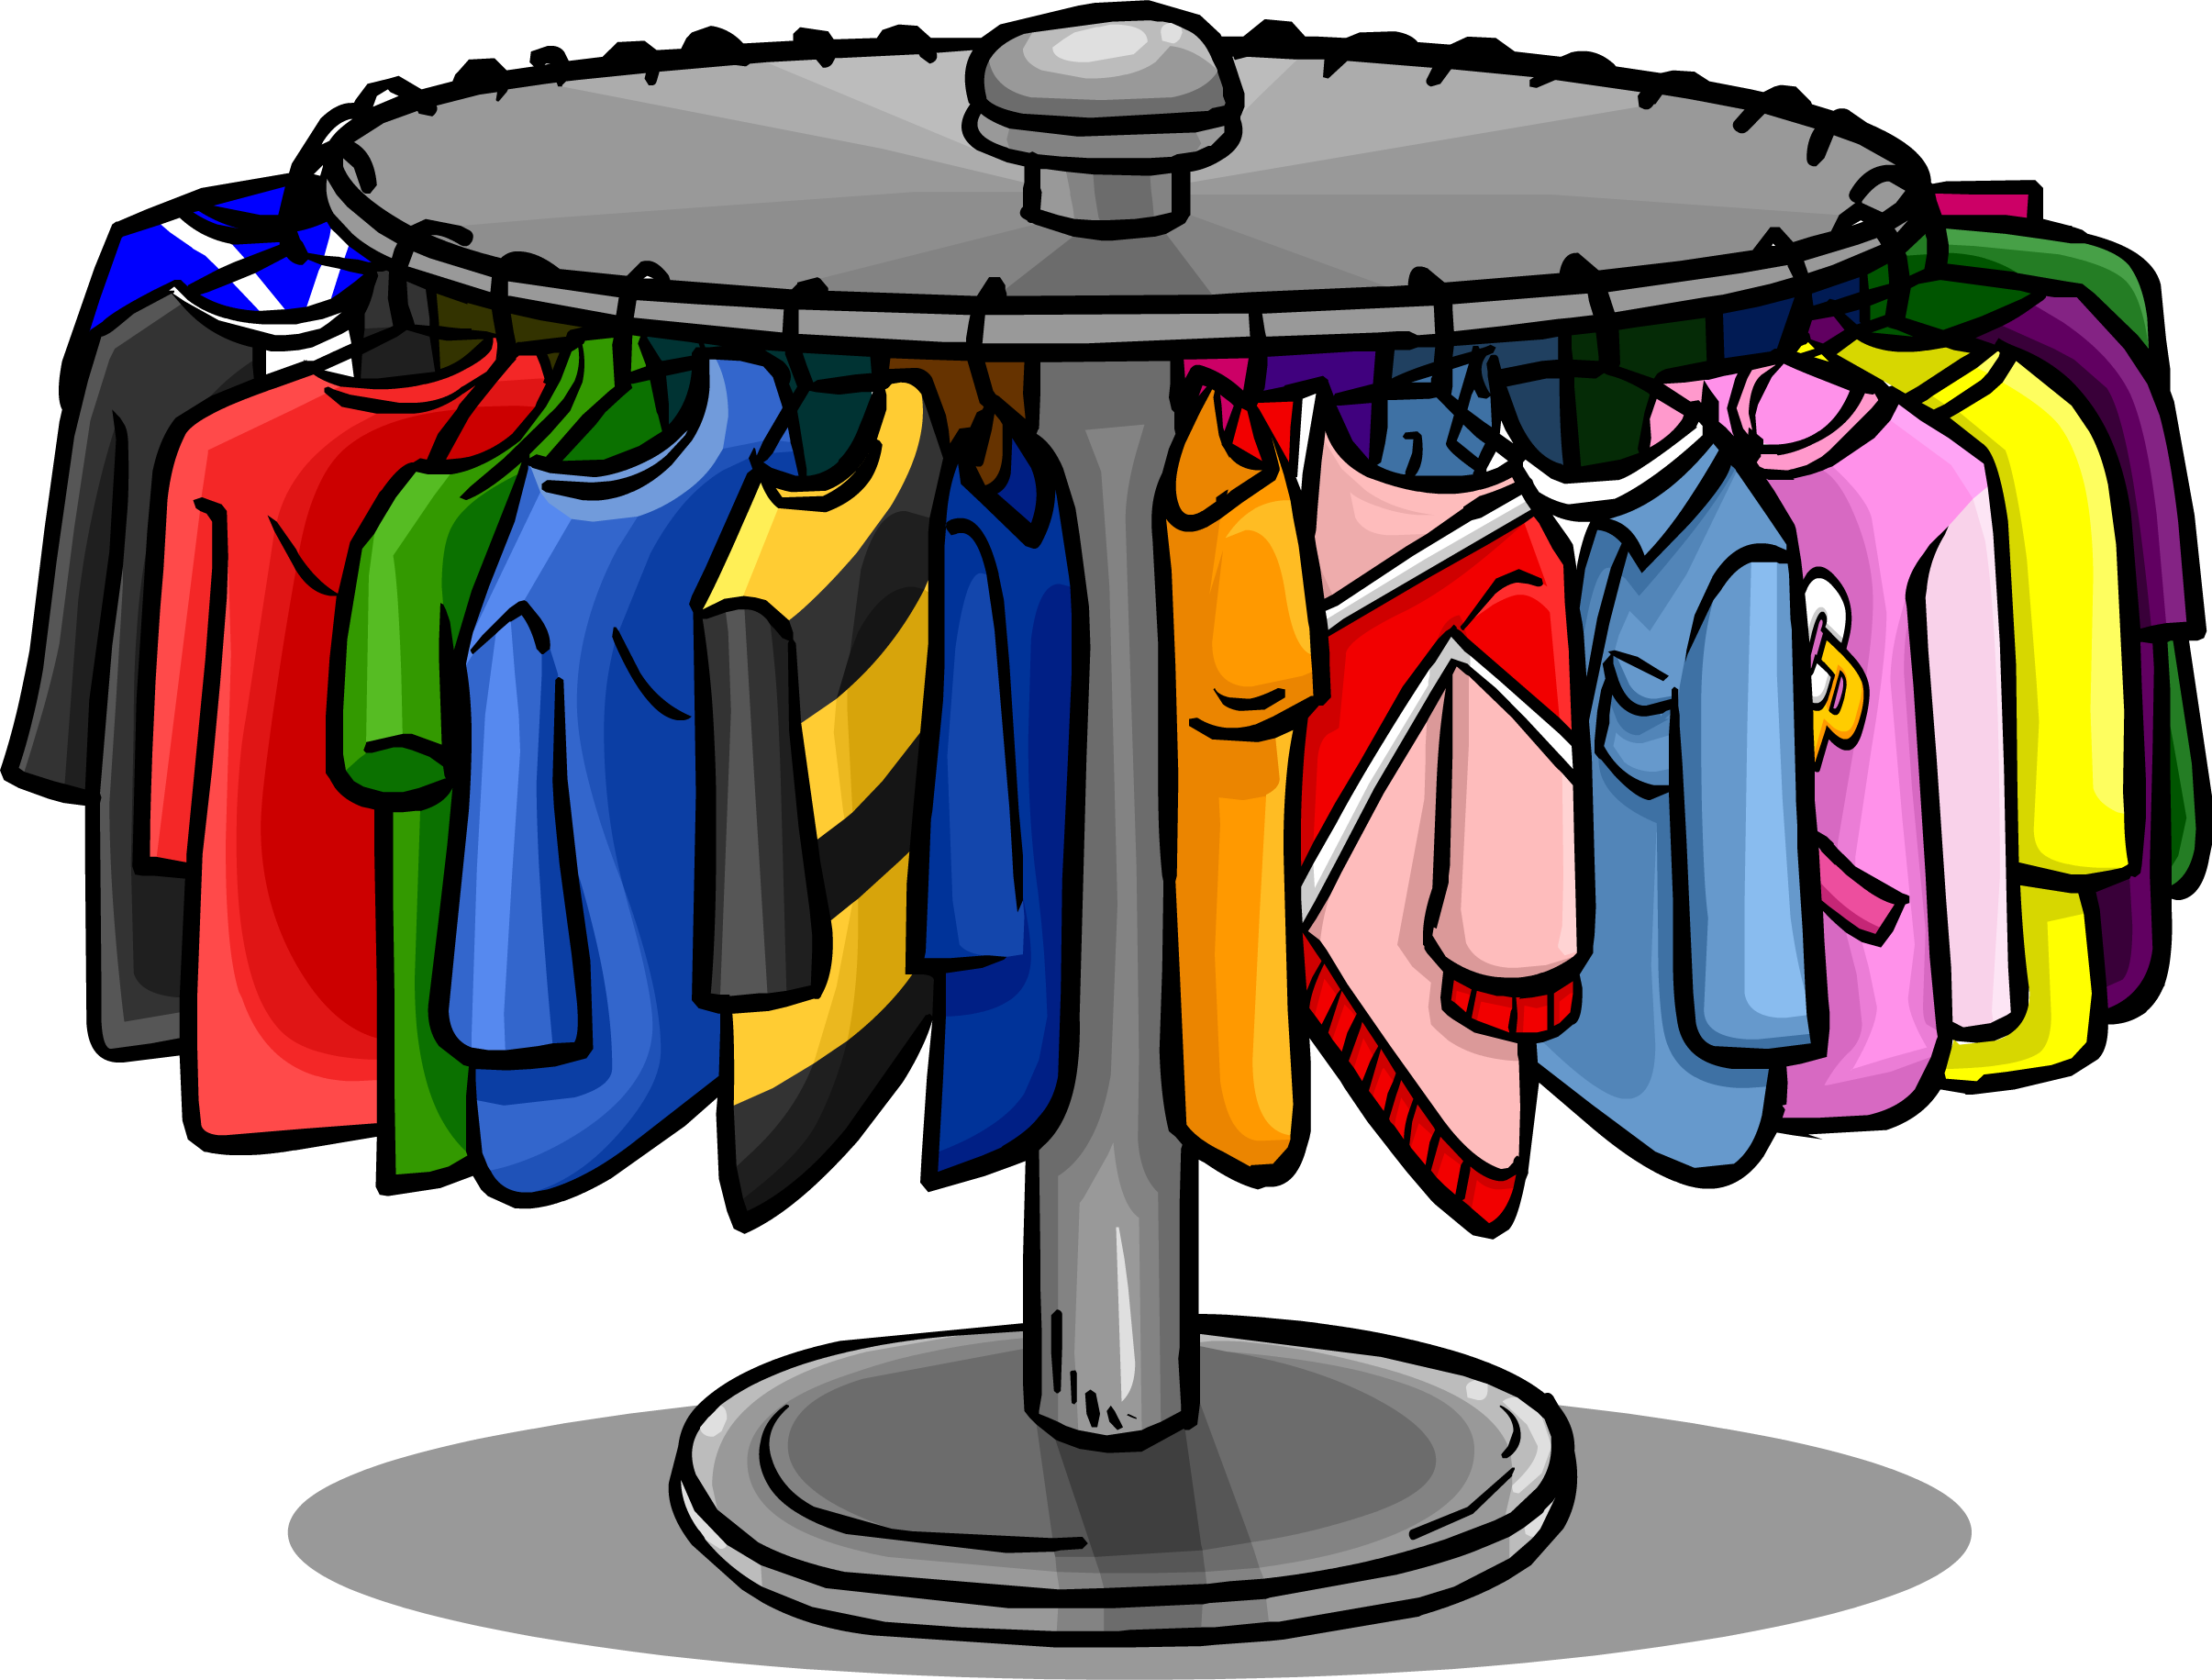 Free Clothing Pictures, Download Free Clip Art, Free Clip.